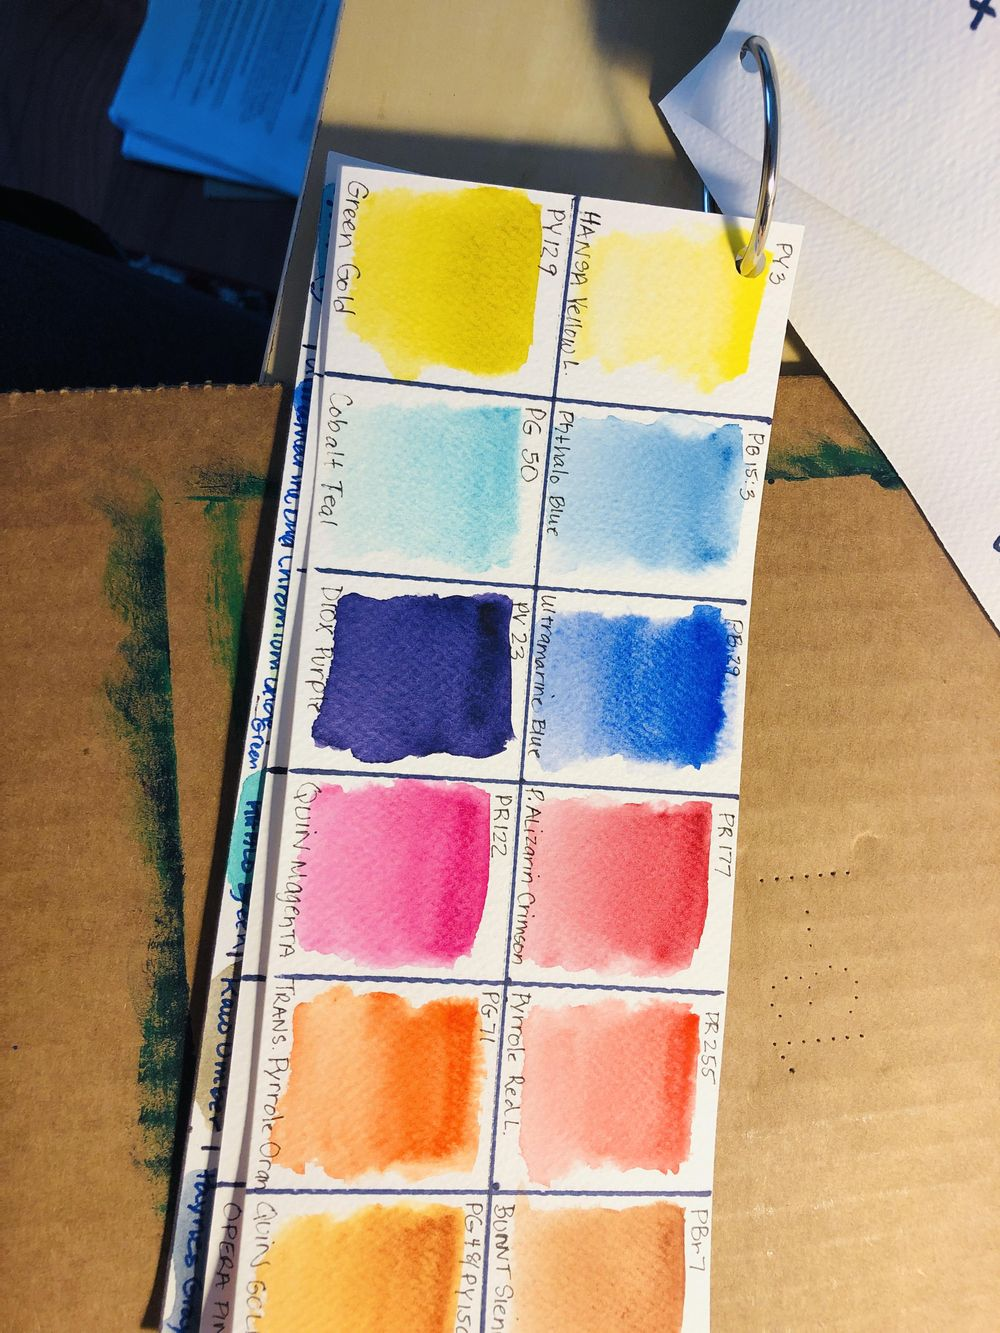 Watercolor Palette Set Ups/Swatches - image 7 - student project